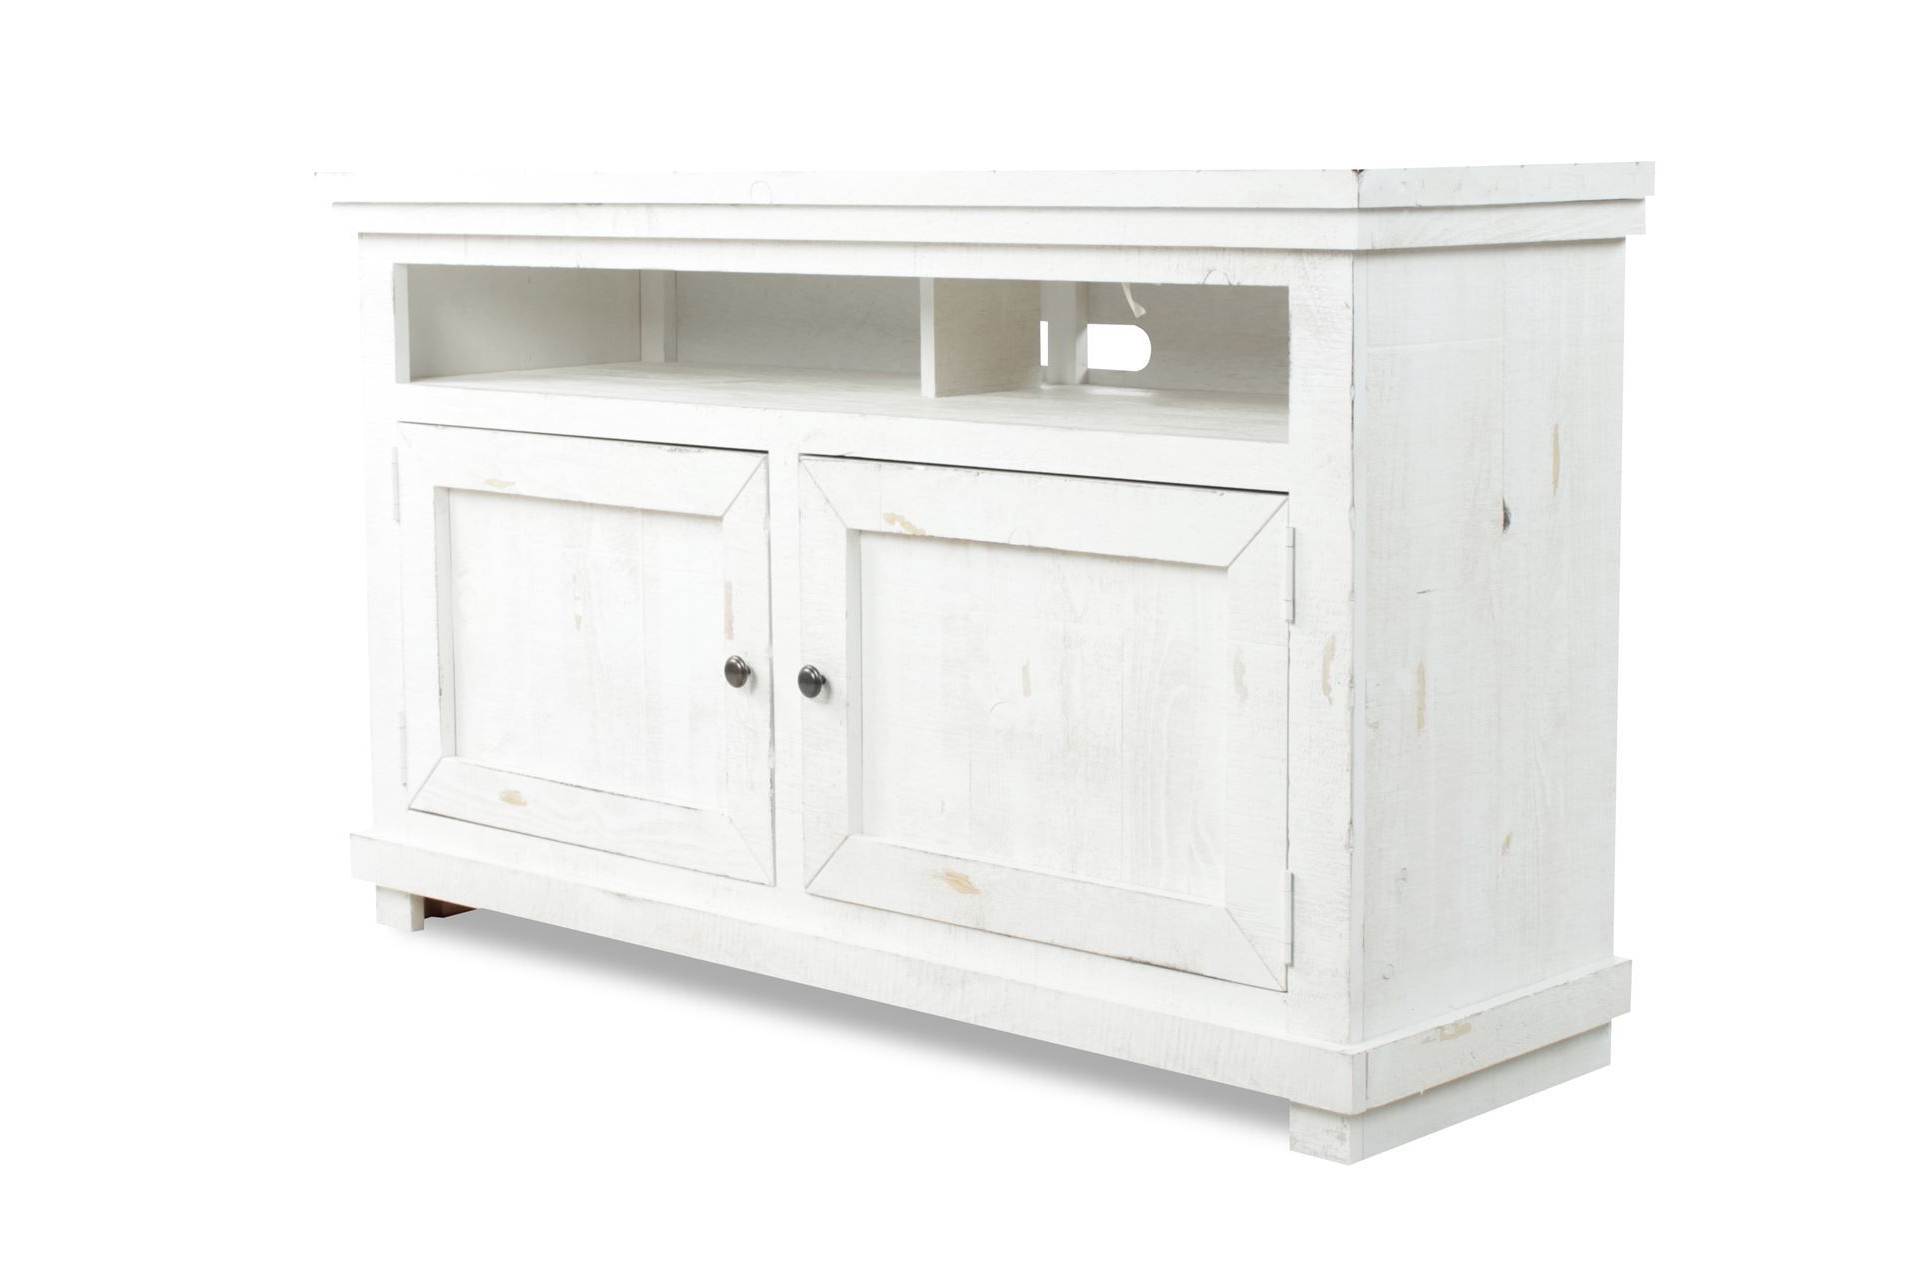 54 Inch Tv Stand, Sinclair White, Weathered White | Consoles, Tv With Regard To Ducar 84 Inch Tv Stands (View 17 of 20)